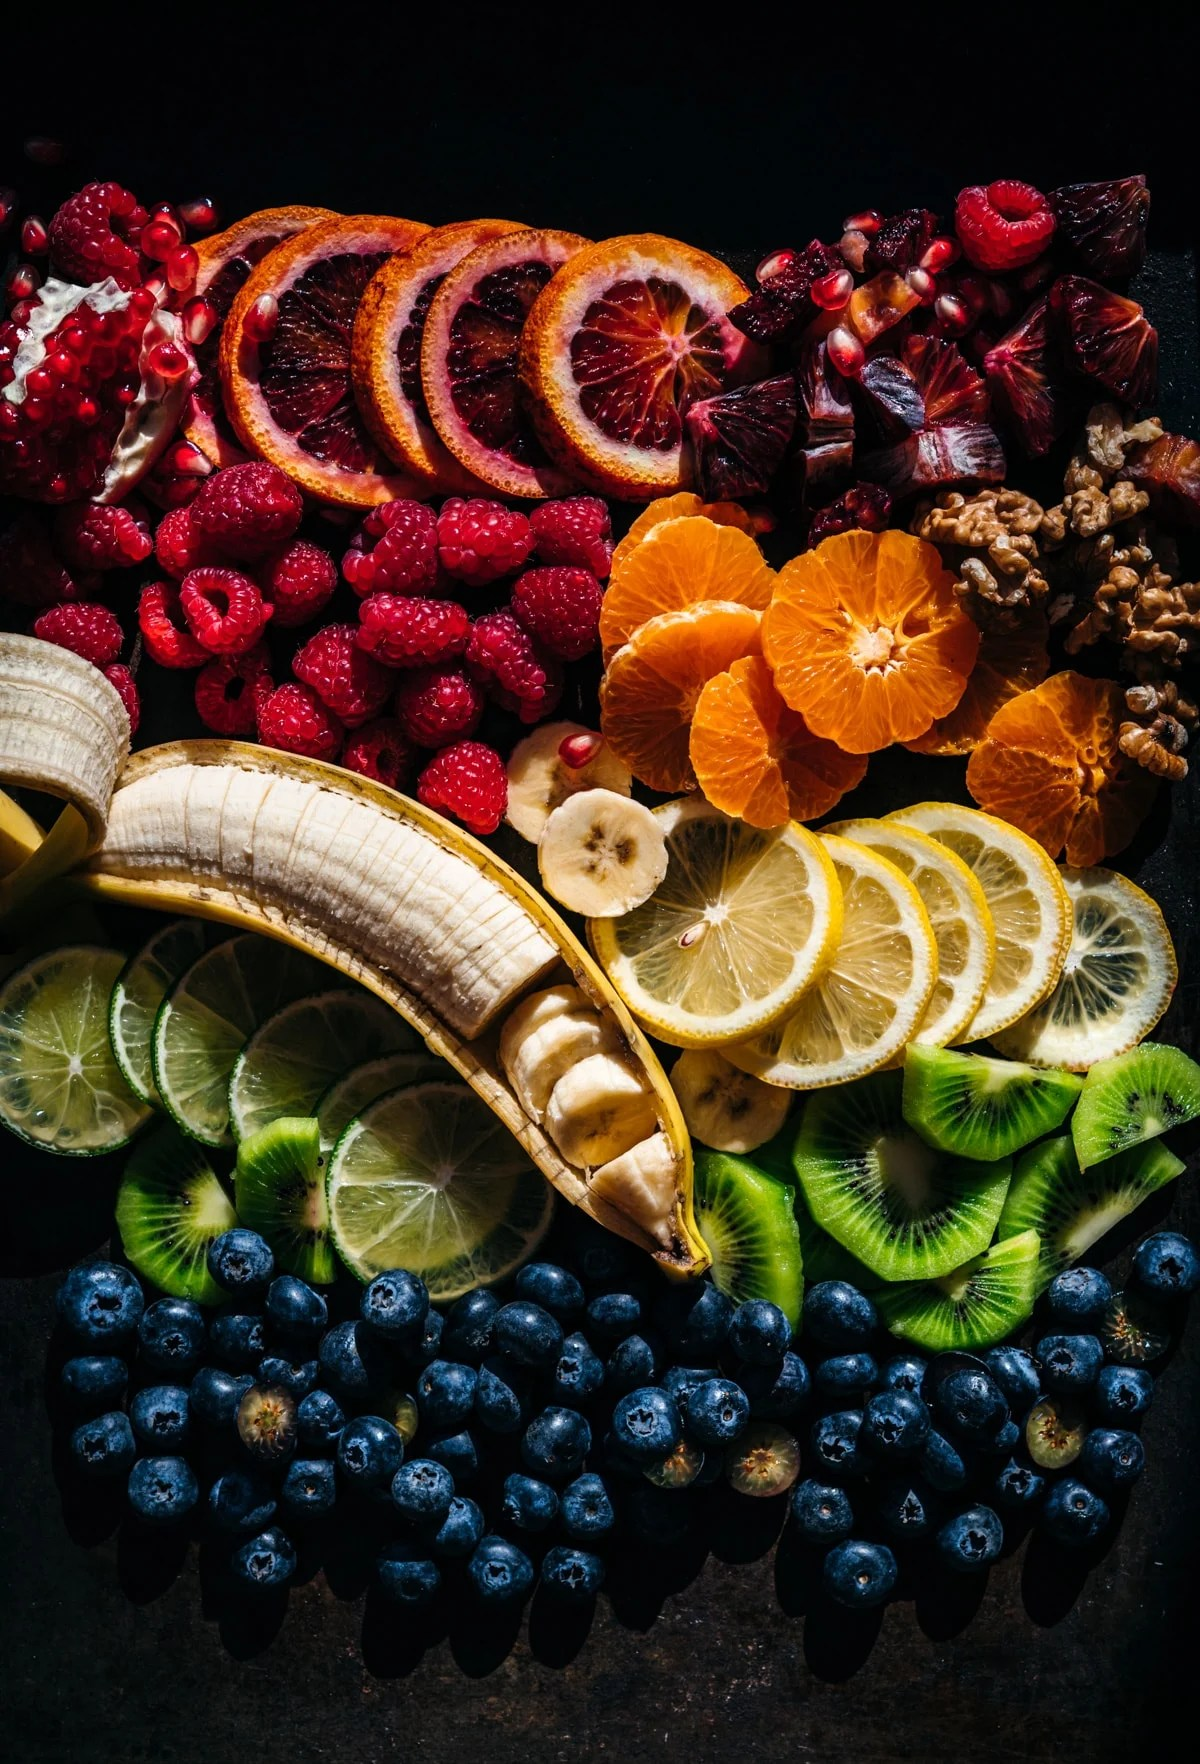 overhead view of rainbow of fresh fruits arranged on a platter.